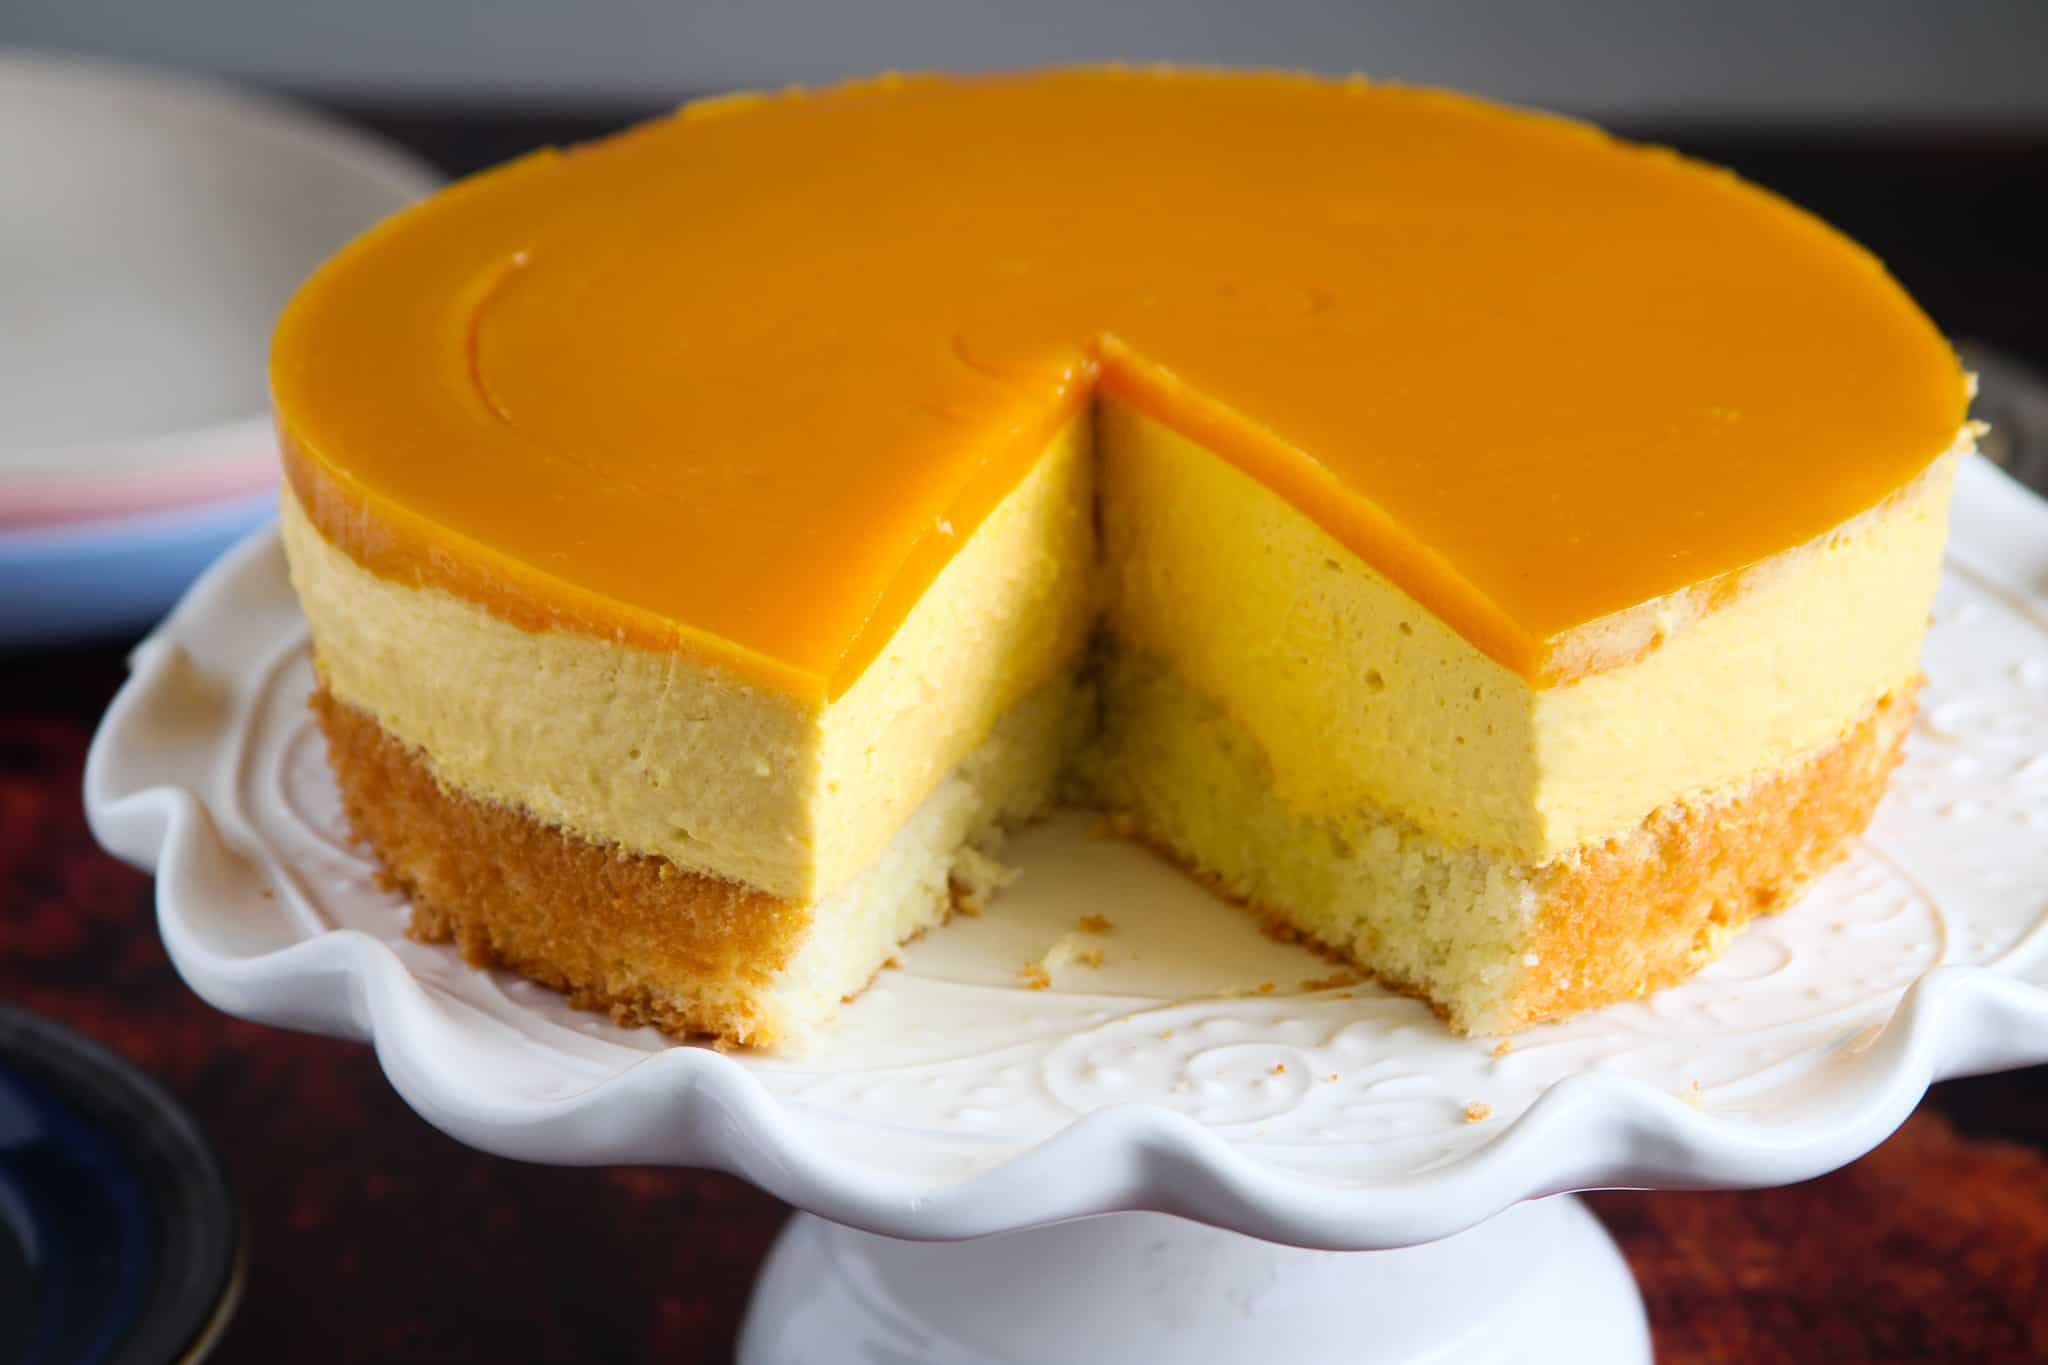 Landscape shot of the mango mousse cake on a cake stand.